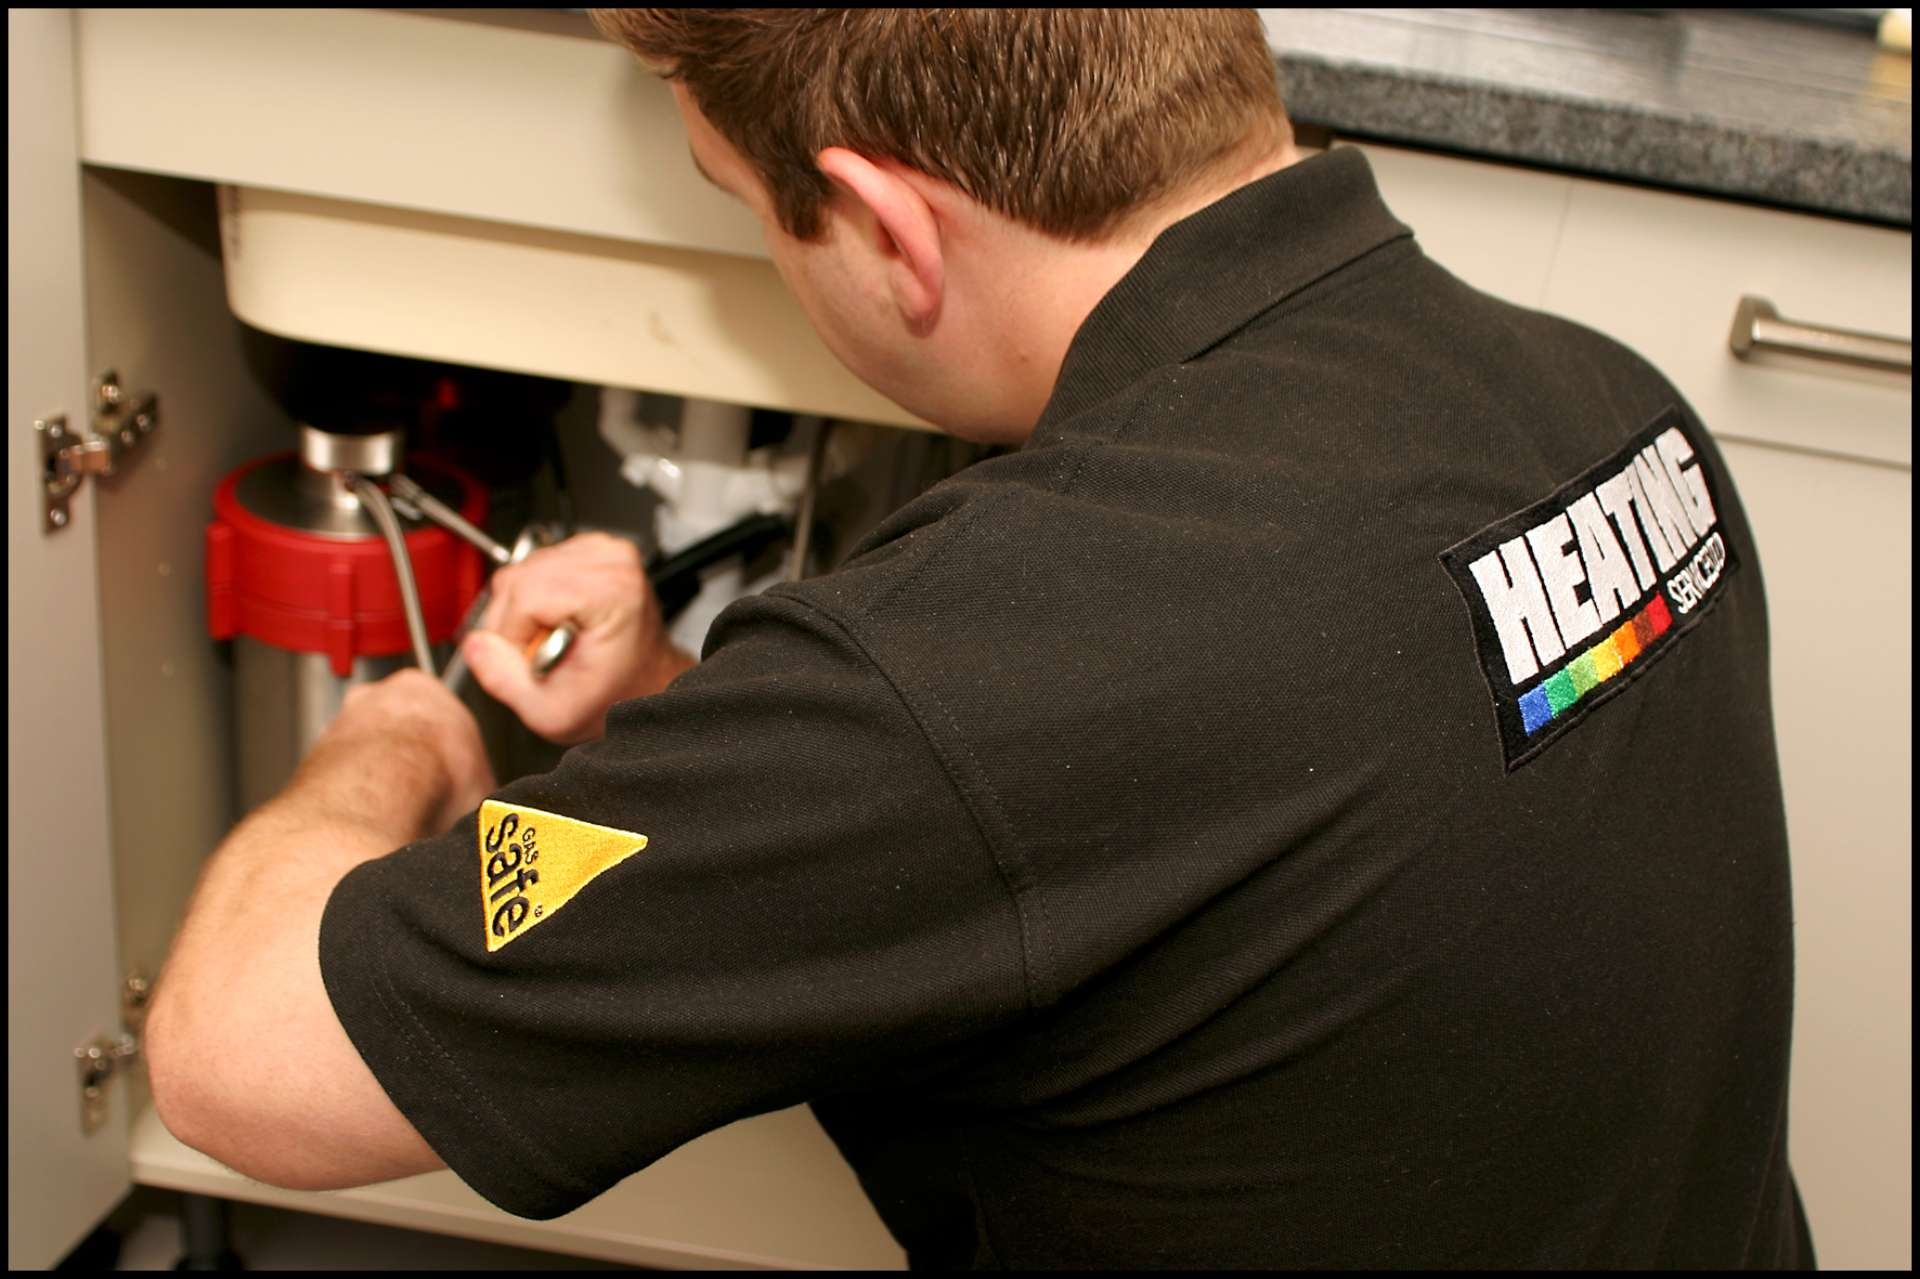 Plumbers Boiler Installation_ Service and Repairs and Bathroom Design and Installation by Heating Services Ltd in Bexley (3)